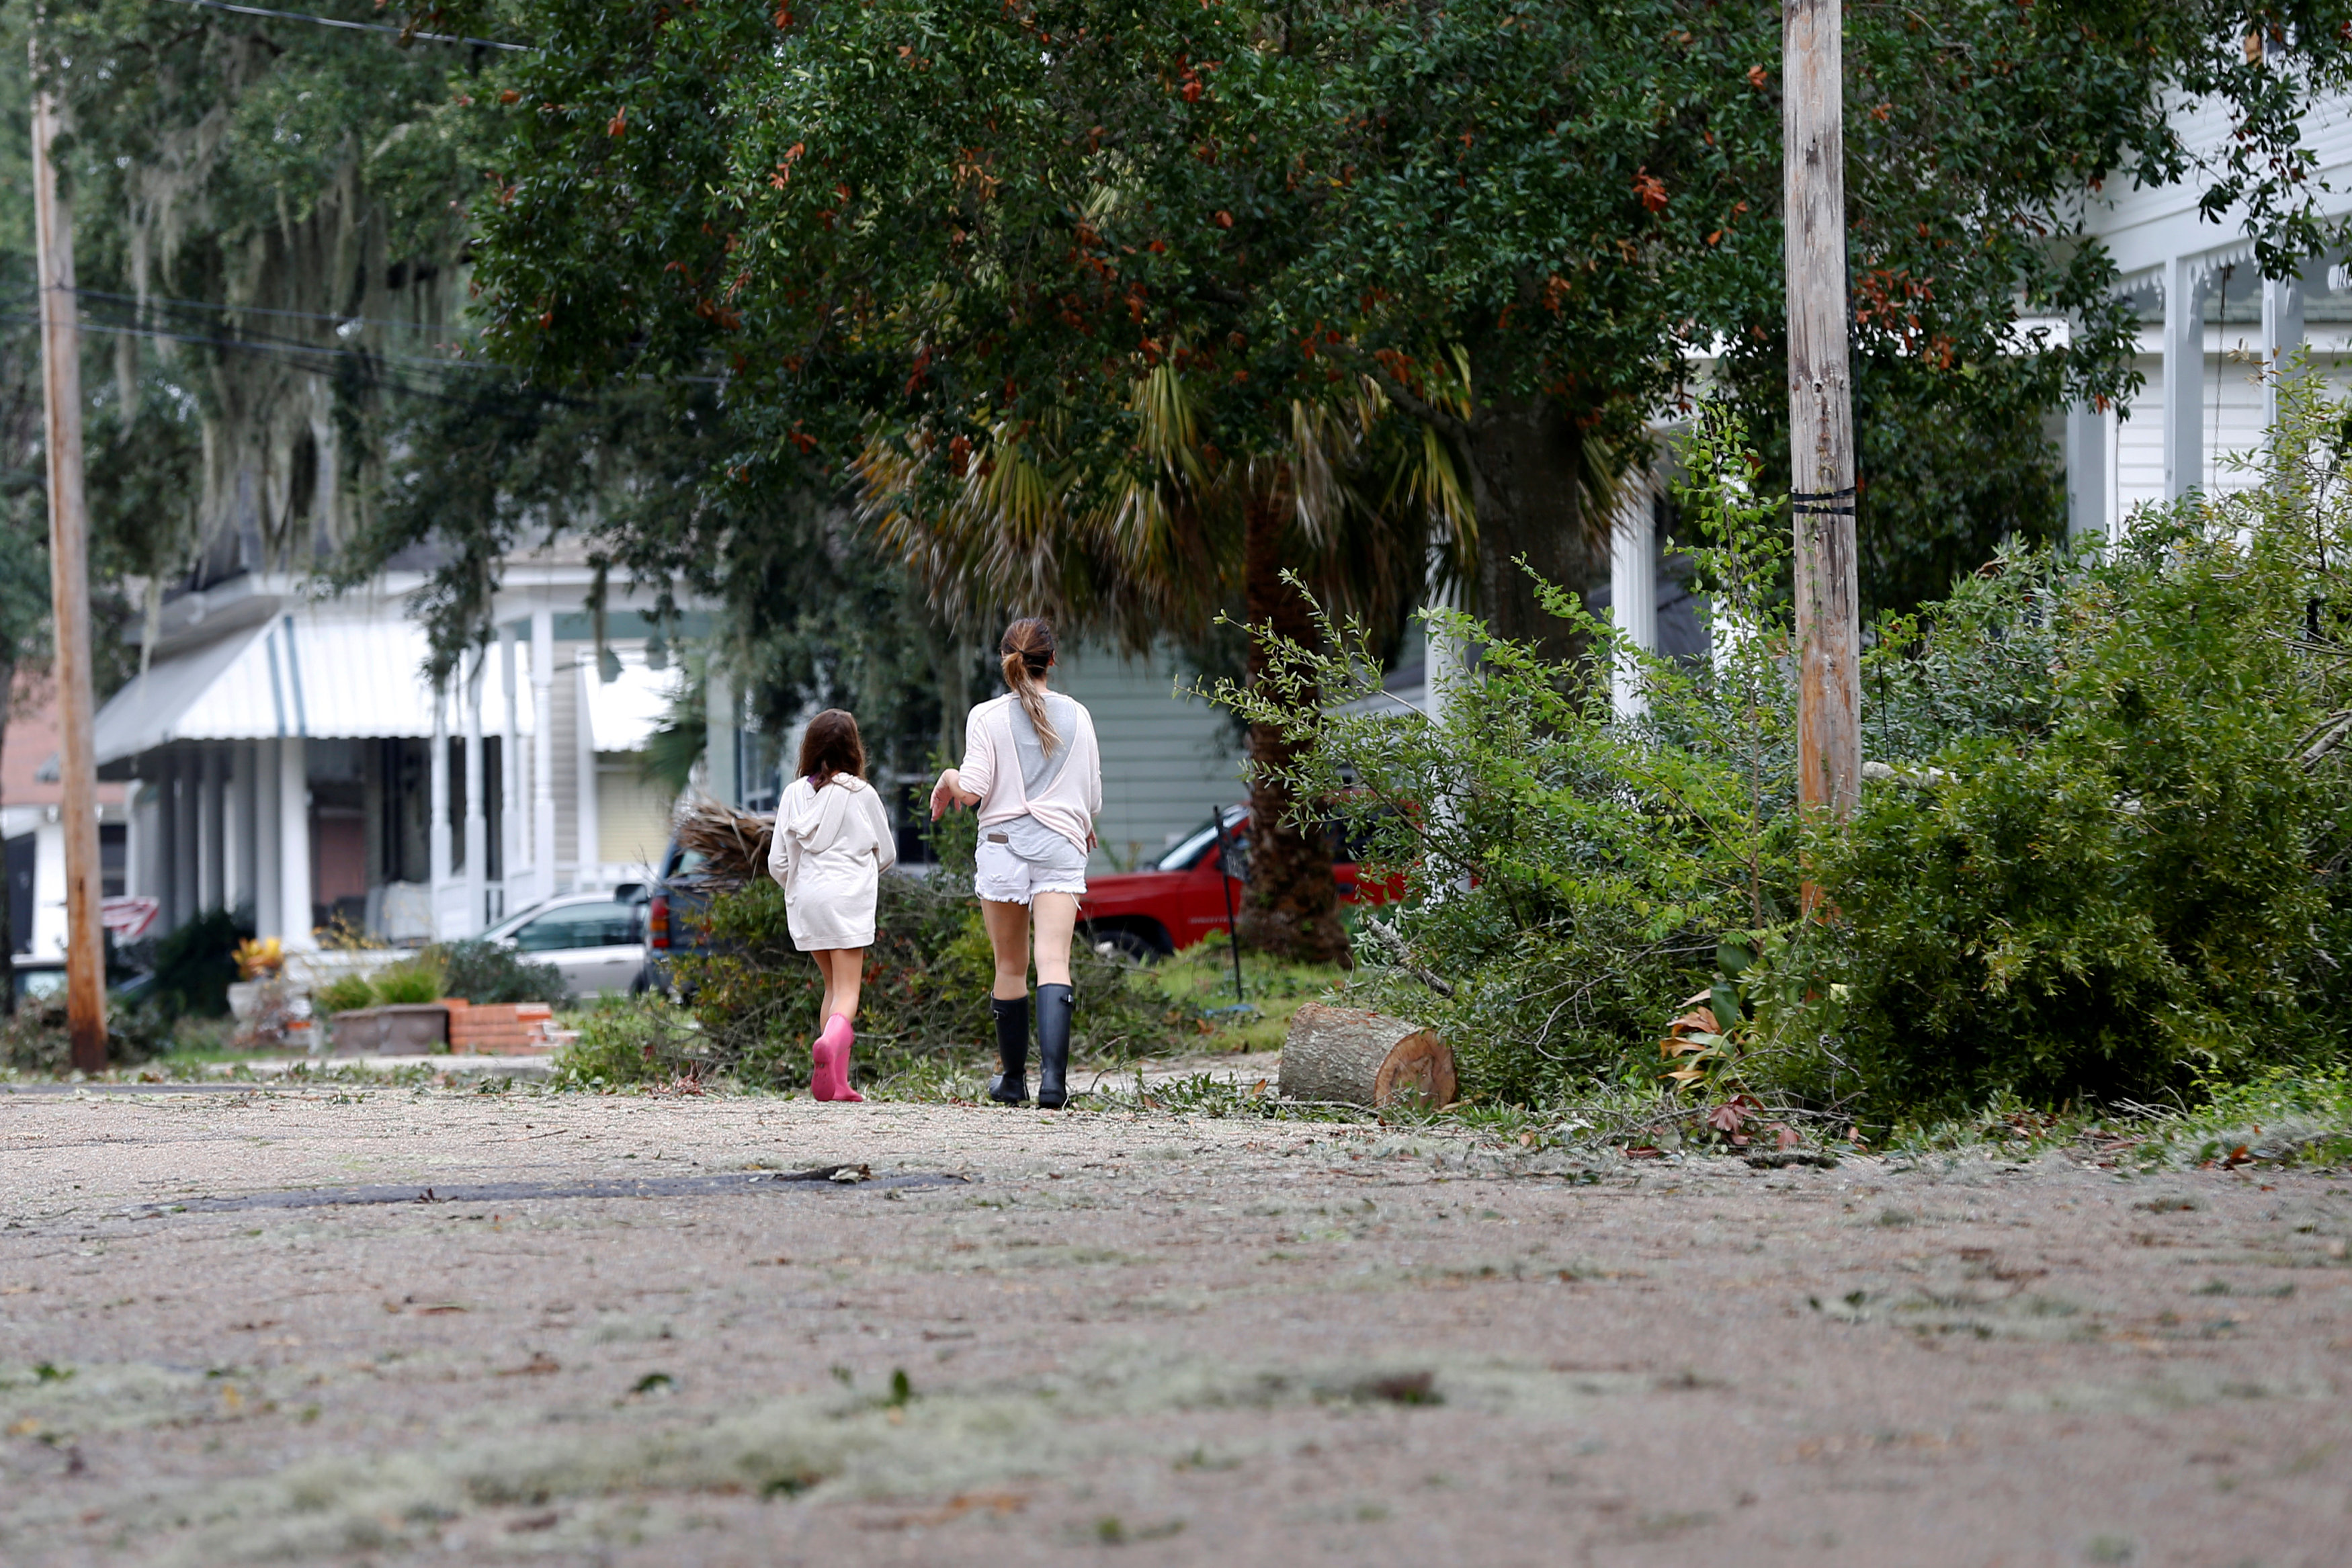 Residents walk down a street covered in debris scattered by Hurricane Nate, in Biloxi, Mississippi, U.S., October 8, 2017.